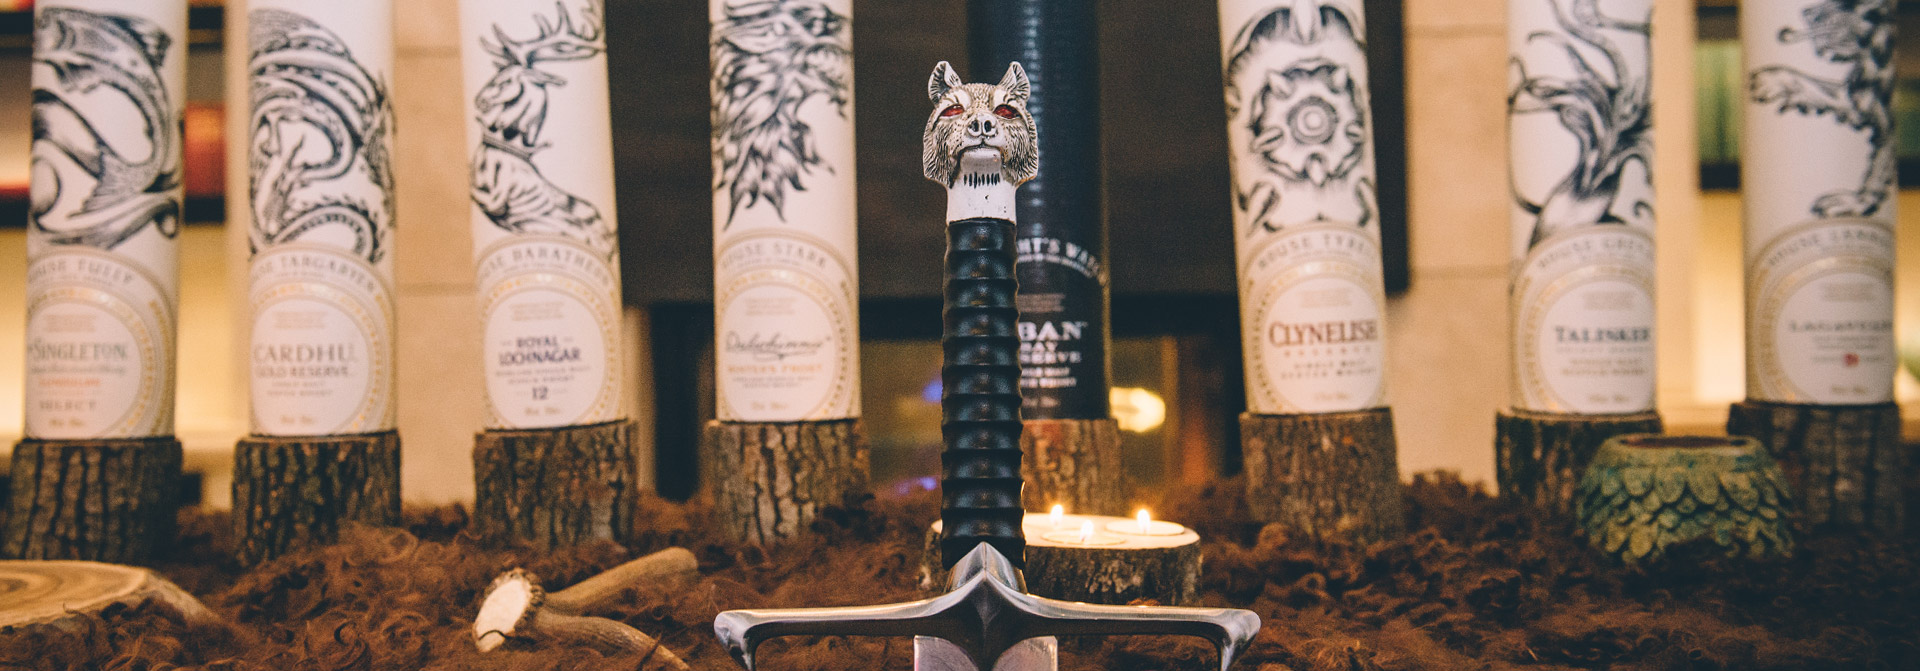 The Tasters Club The Game of Thrones Whisky Weekend Costa Navarino 2019